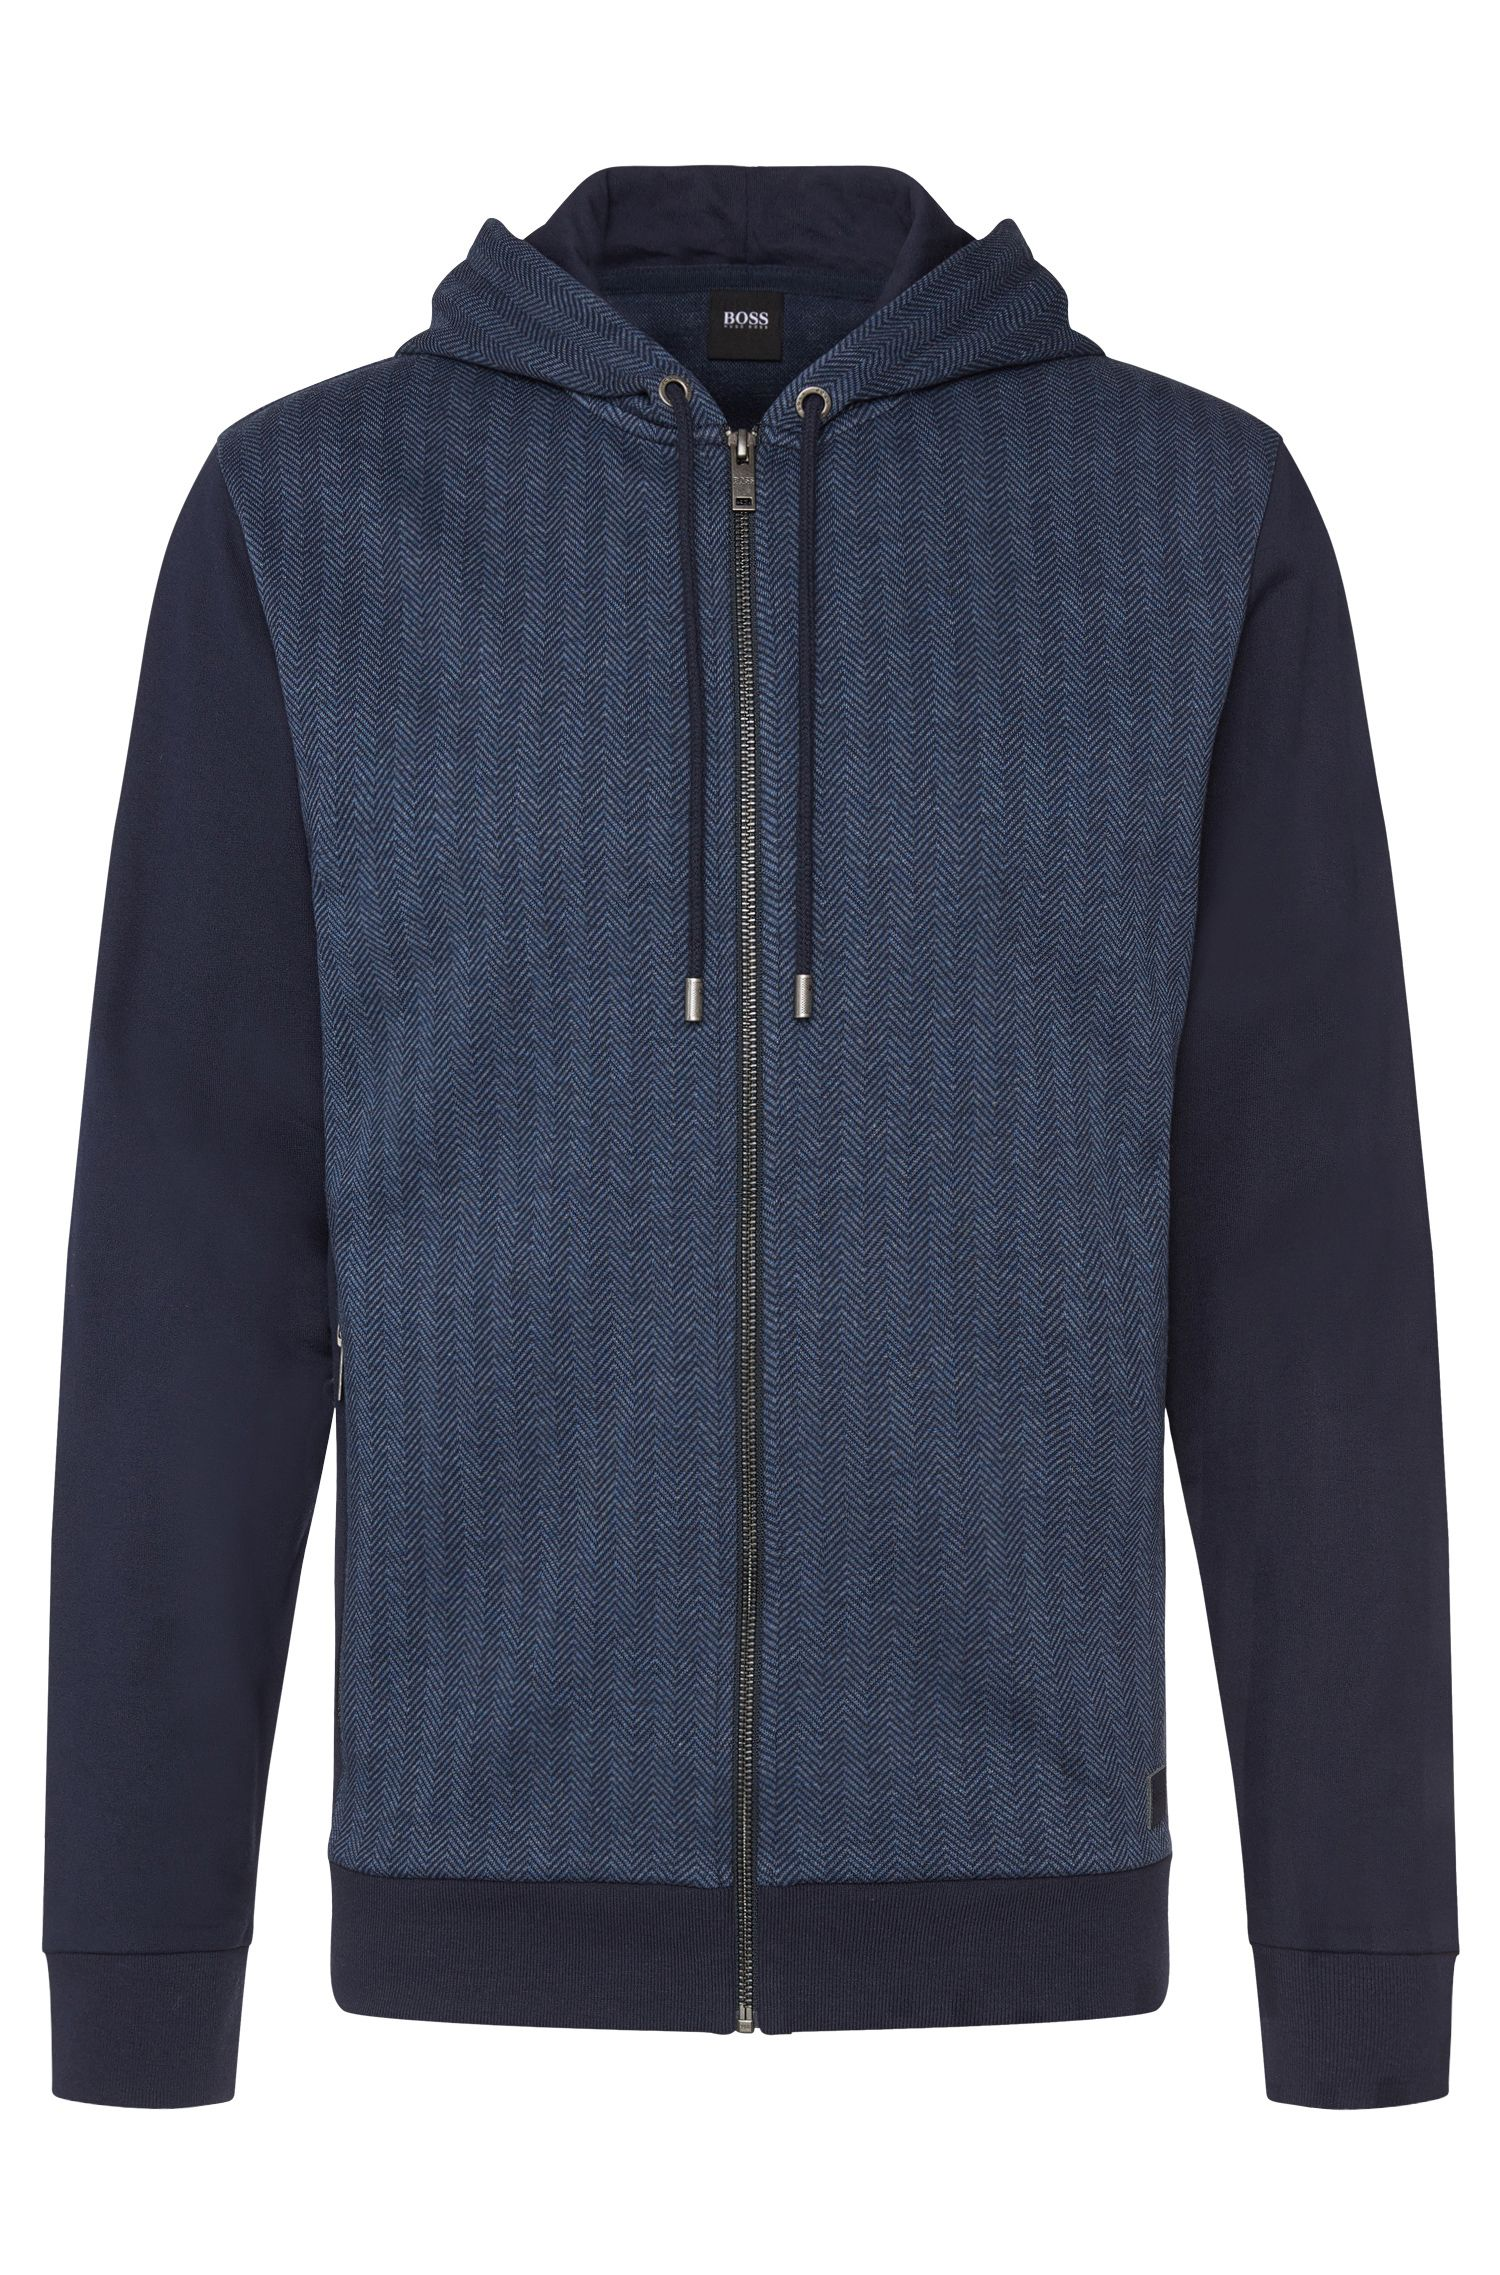 Blouson sweat en coton à motif, à capuche : « Jacket Hooded »